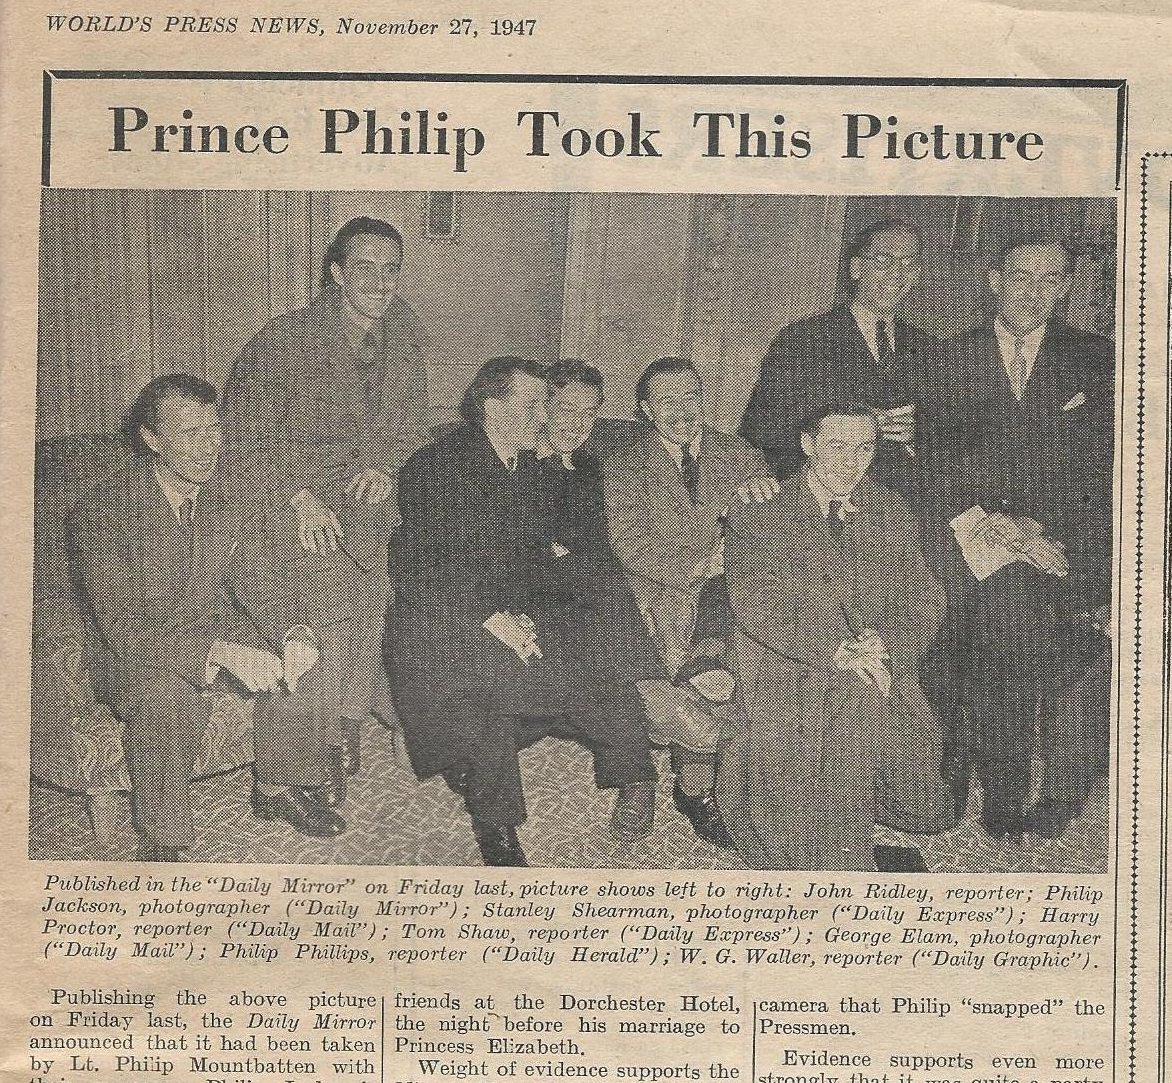 Remembering when Fleet Street journalists blagged their way into Prince Philip's stag do